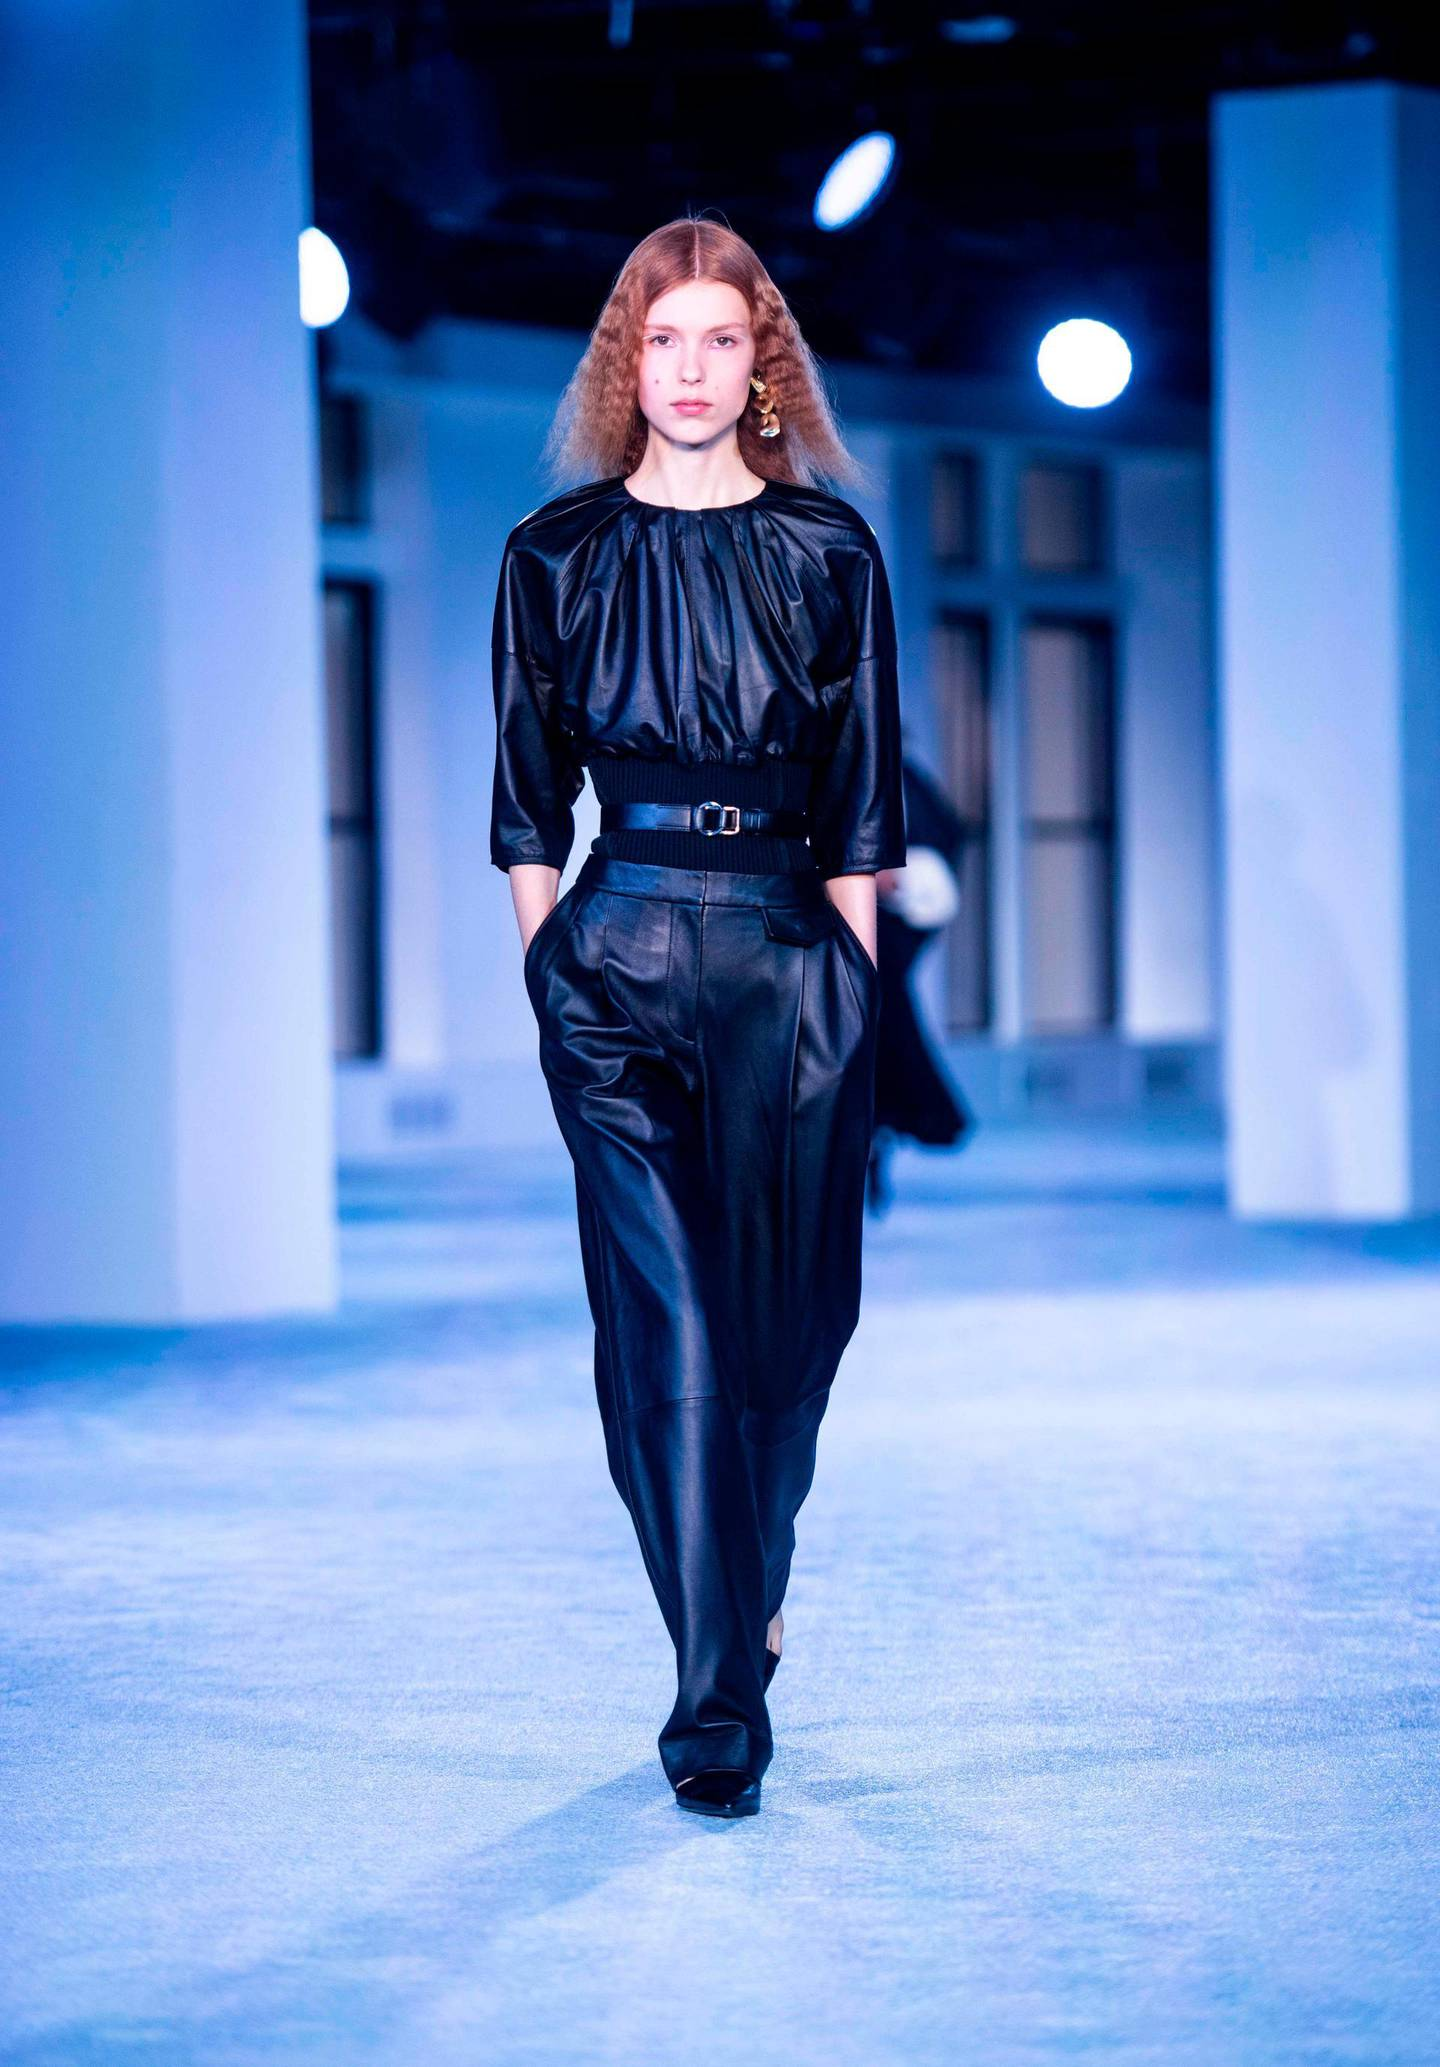 A model walks the runway of Phillip Lim fashion show during New York Fashion Week on February 11, 2019 in New York City.  / AFP / Johannes EISELE